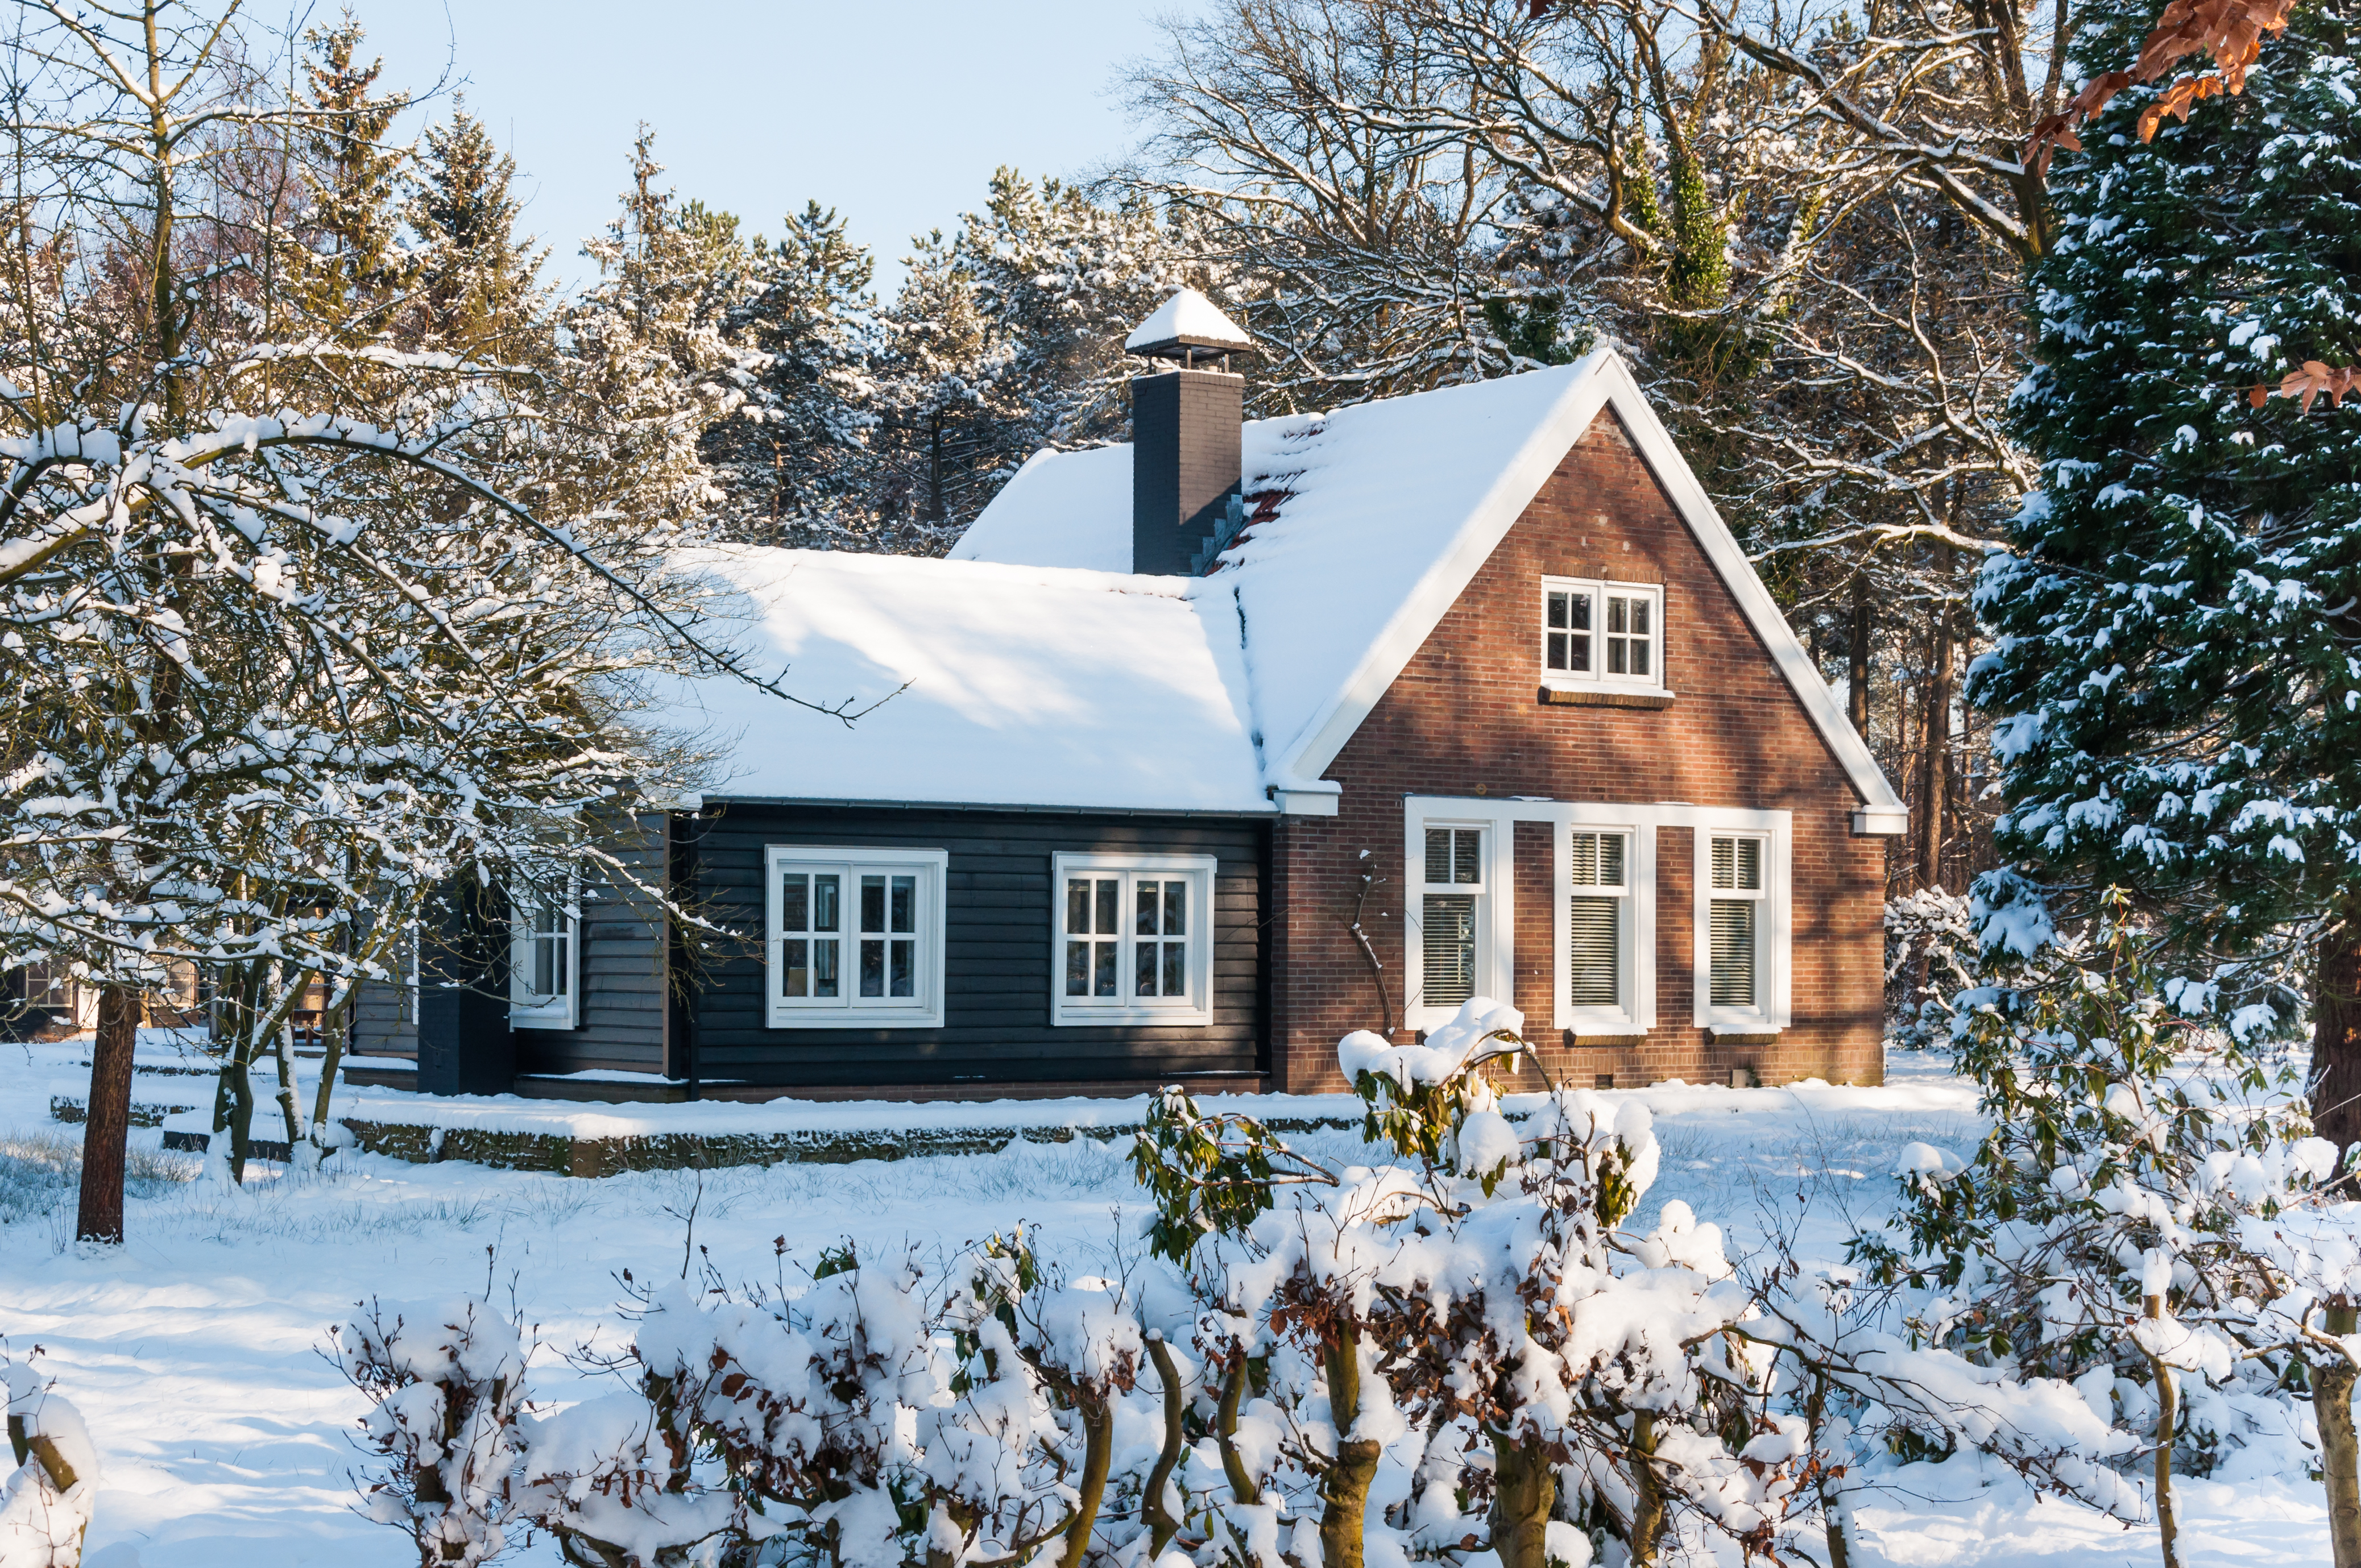 HOW TO KEEP YOUR HOME WARM THIS WINTER